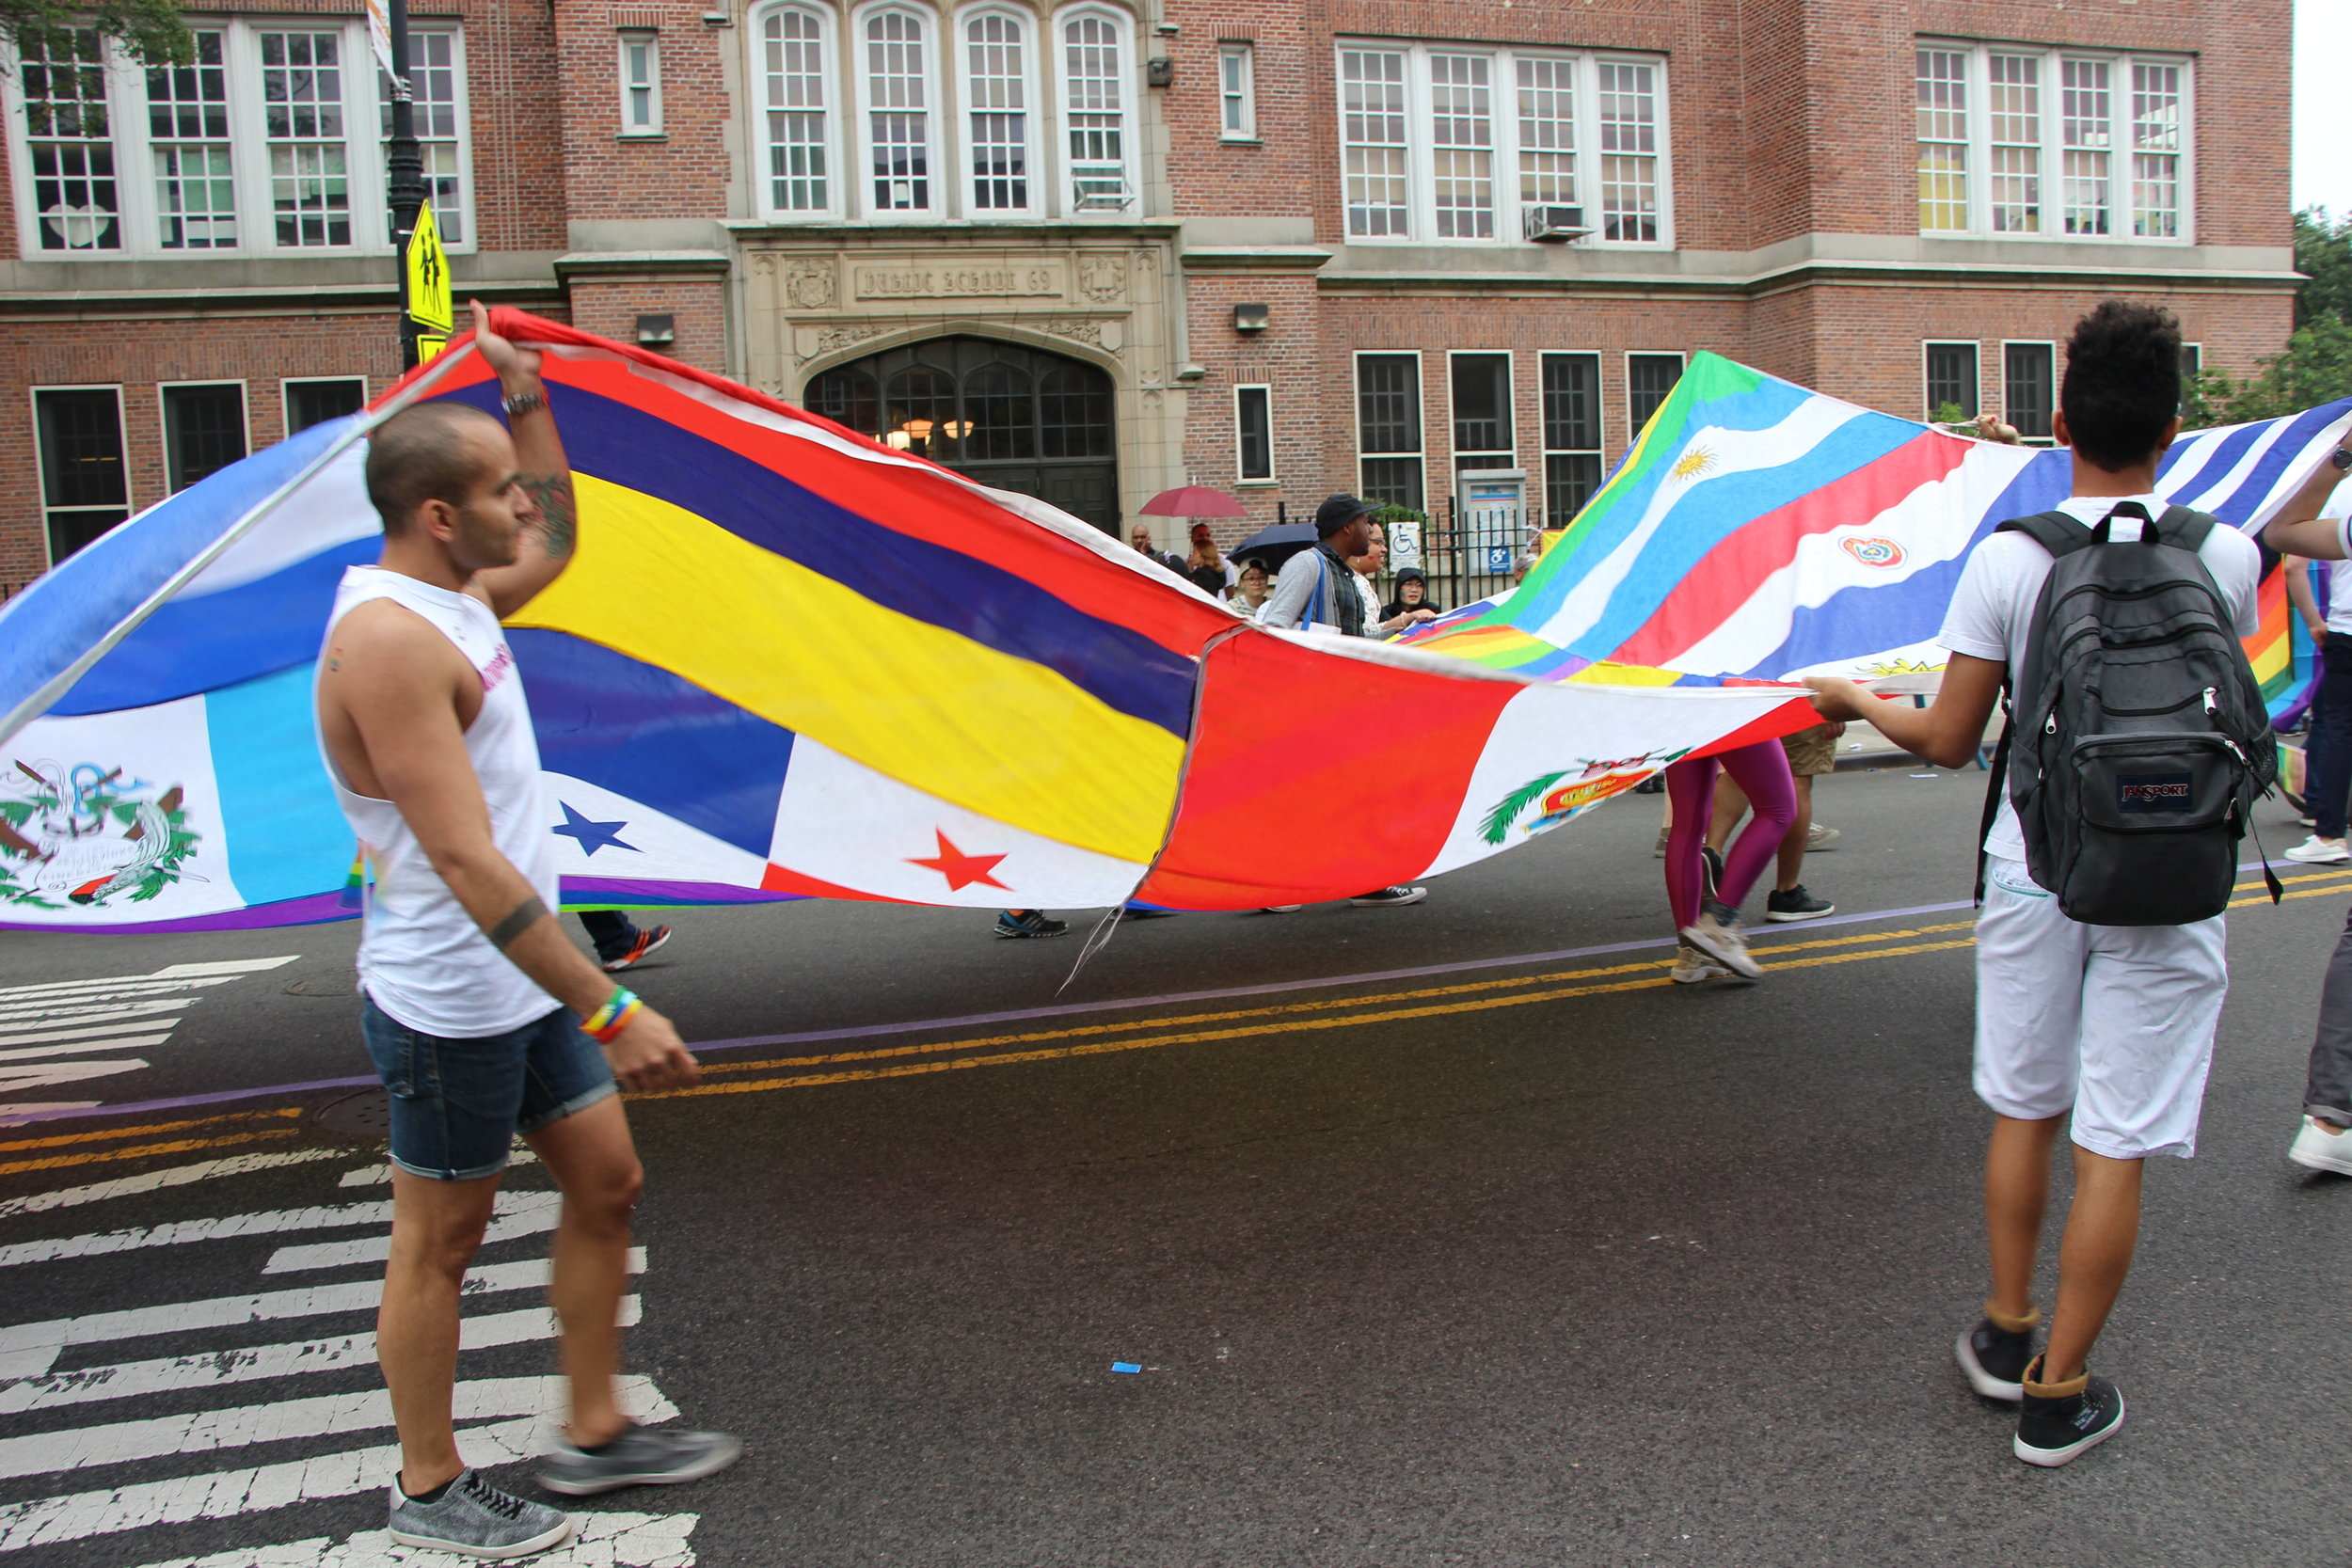 Another view of the giant patchwork of flags. As noted in the 2010 report in  The New York Times , the Queens Pride House has provided services to Queens' immigrant community. Source : Pauline Park/Used With Permission